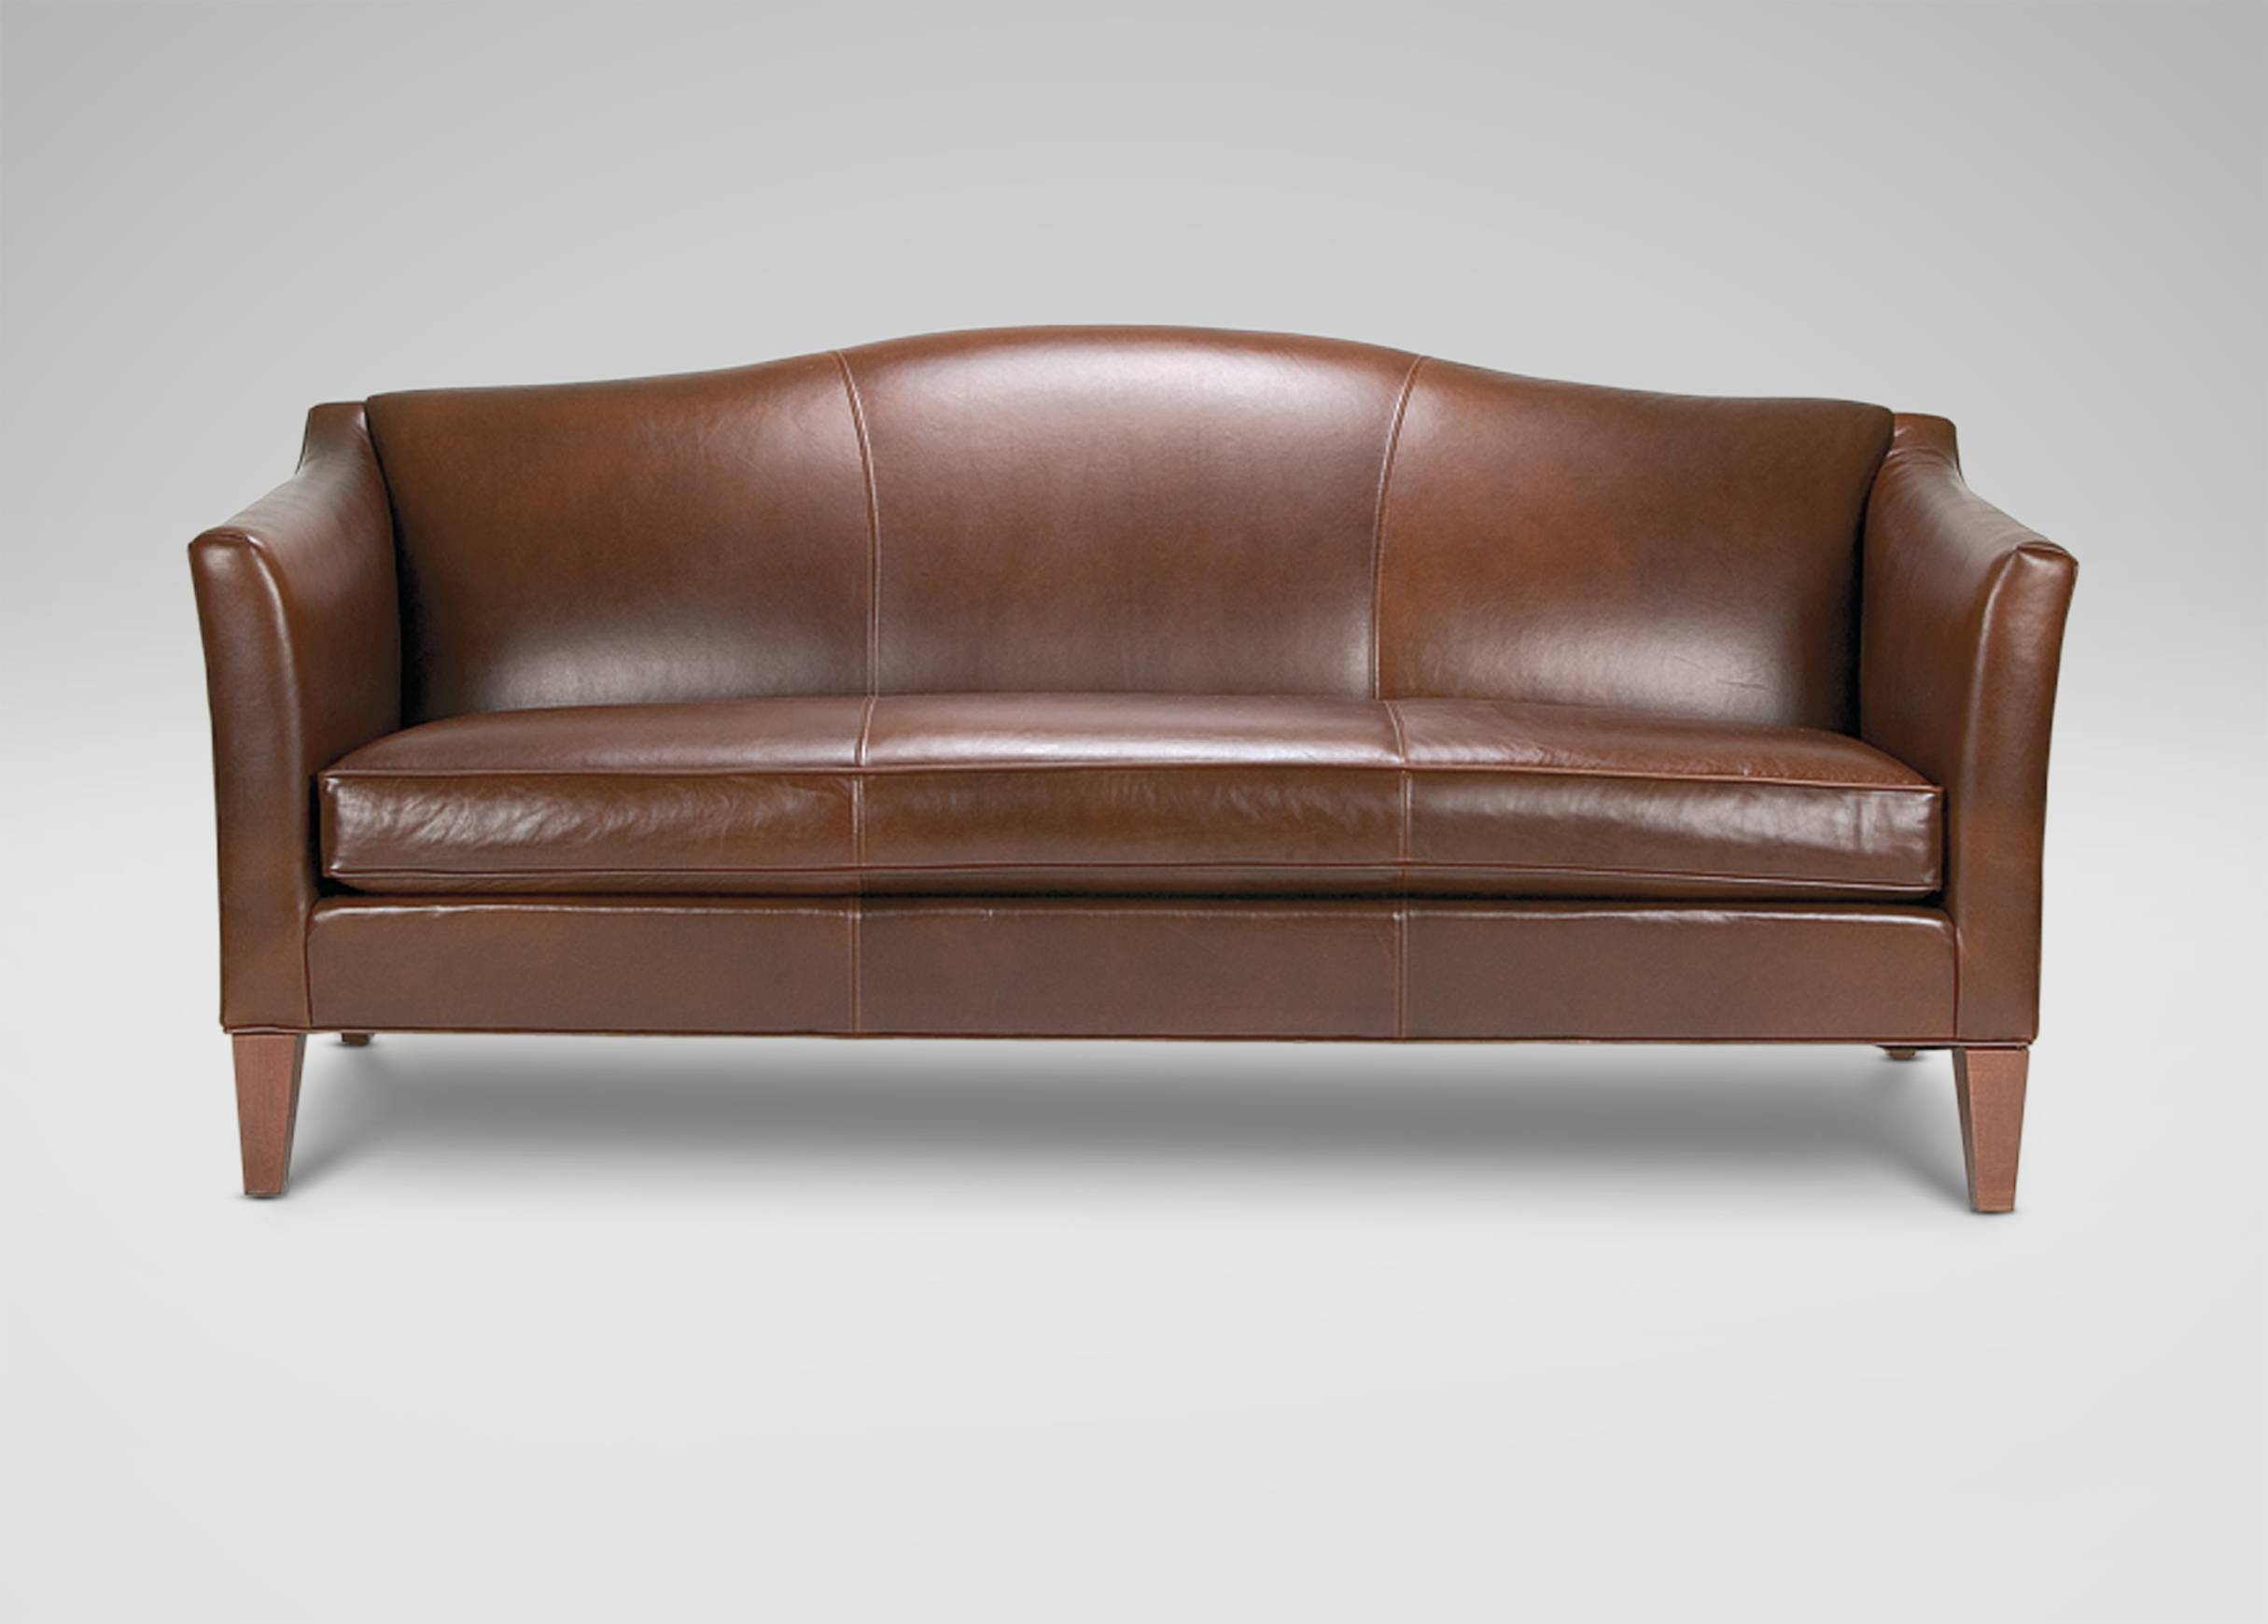 Hartwell Bench-Cushion Leather Sofa - Ethan Allen | Sitegenesis within Camelback Leather Sofas (Image 4 of 15)